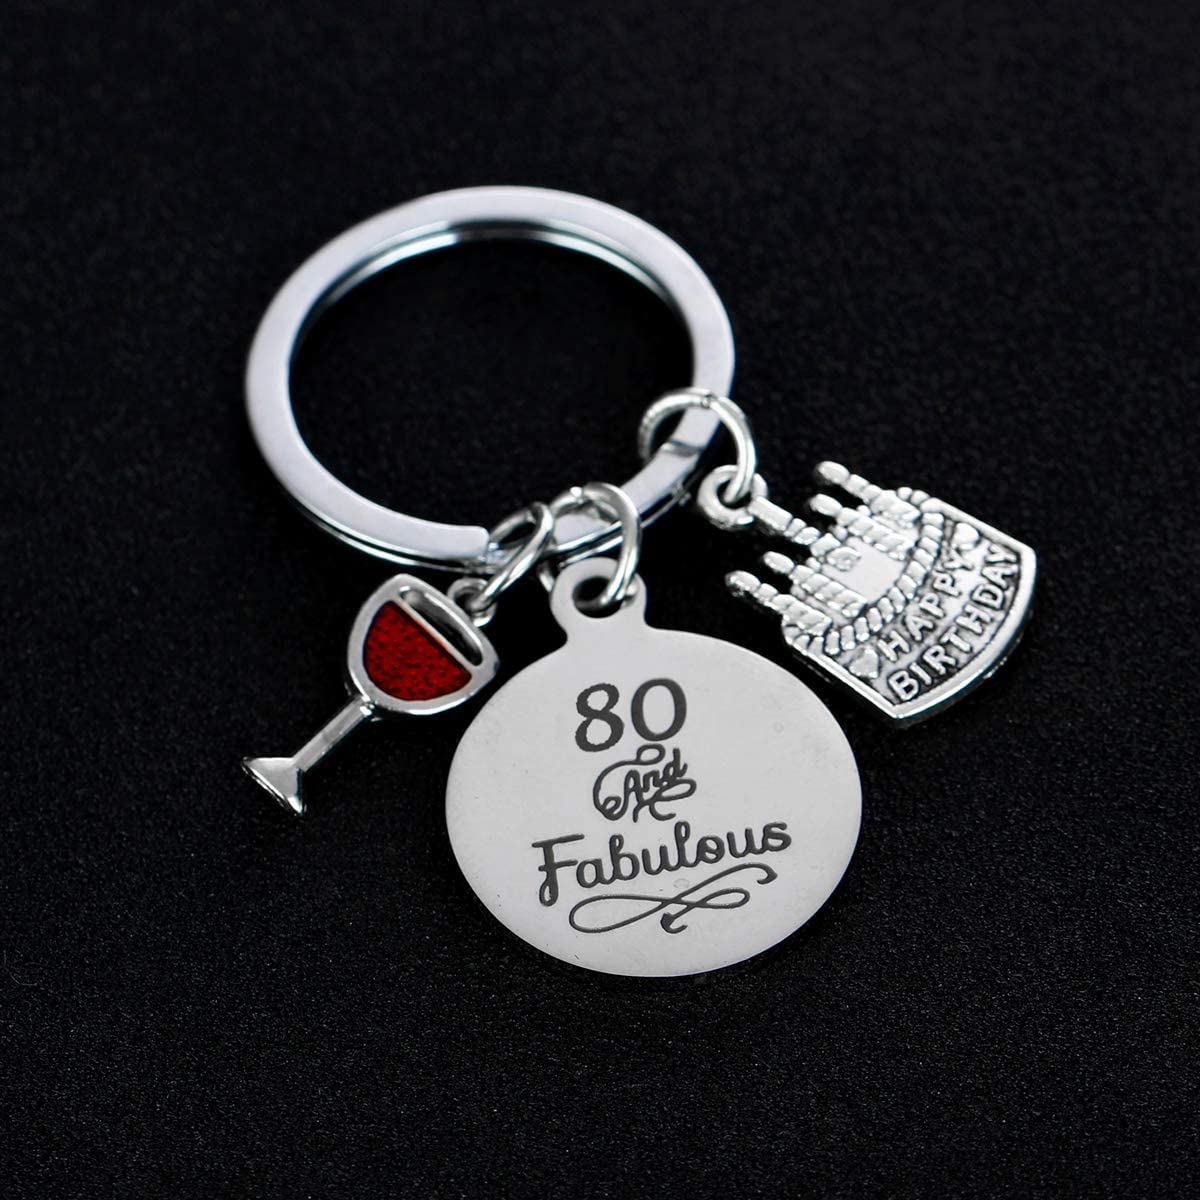 Birthday Gifts Live Laugh Love Birthday Keychains for Women Girls Inspirational Gifts for Friends Female 13th Birthday